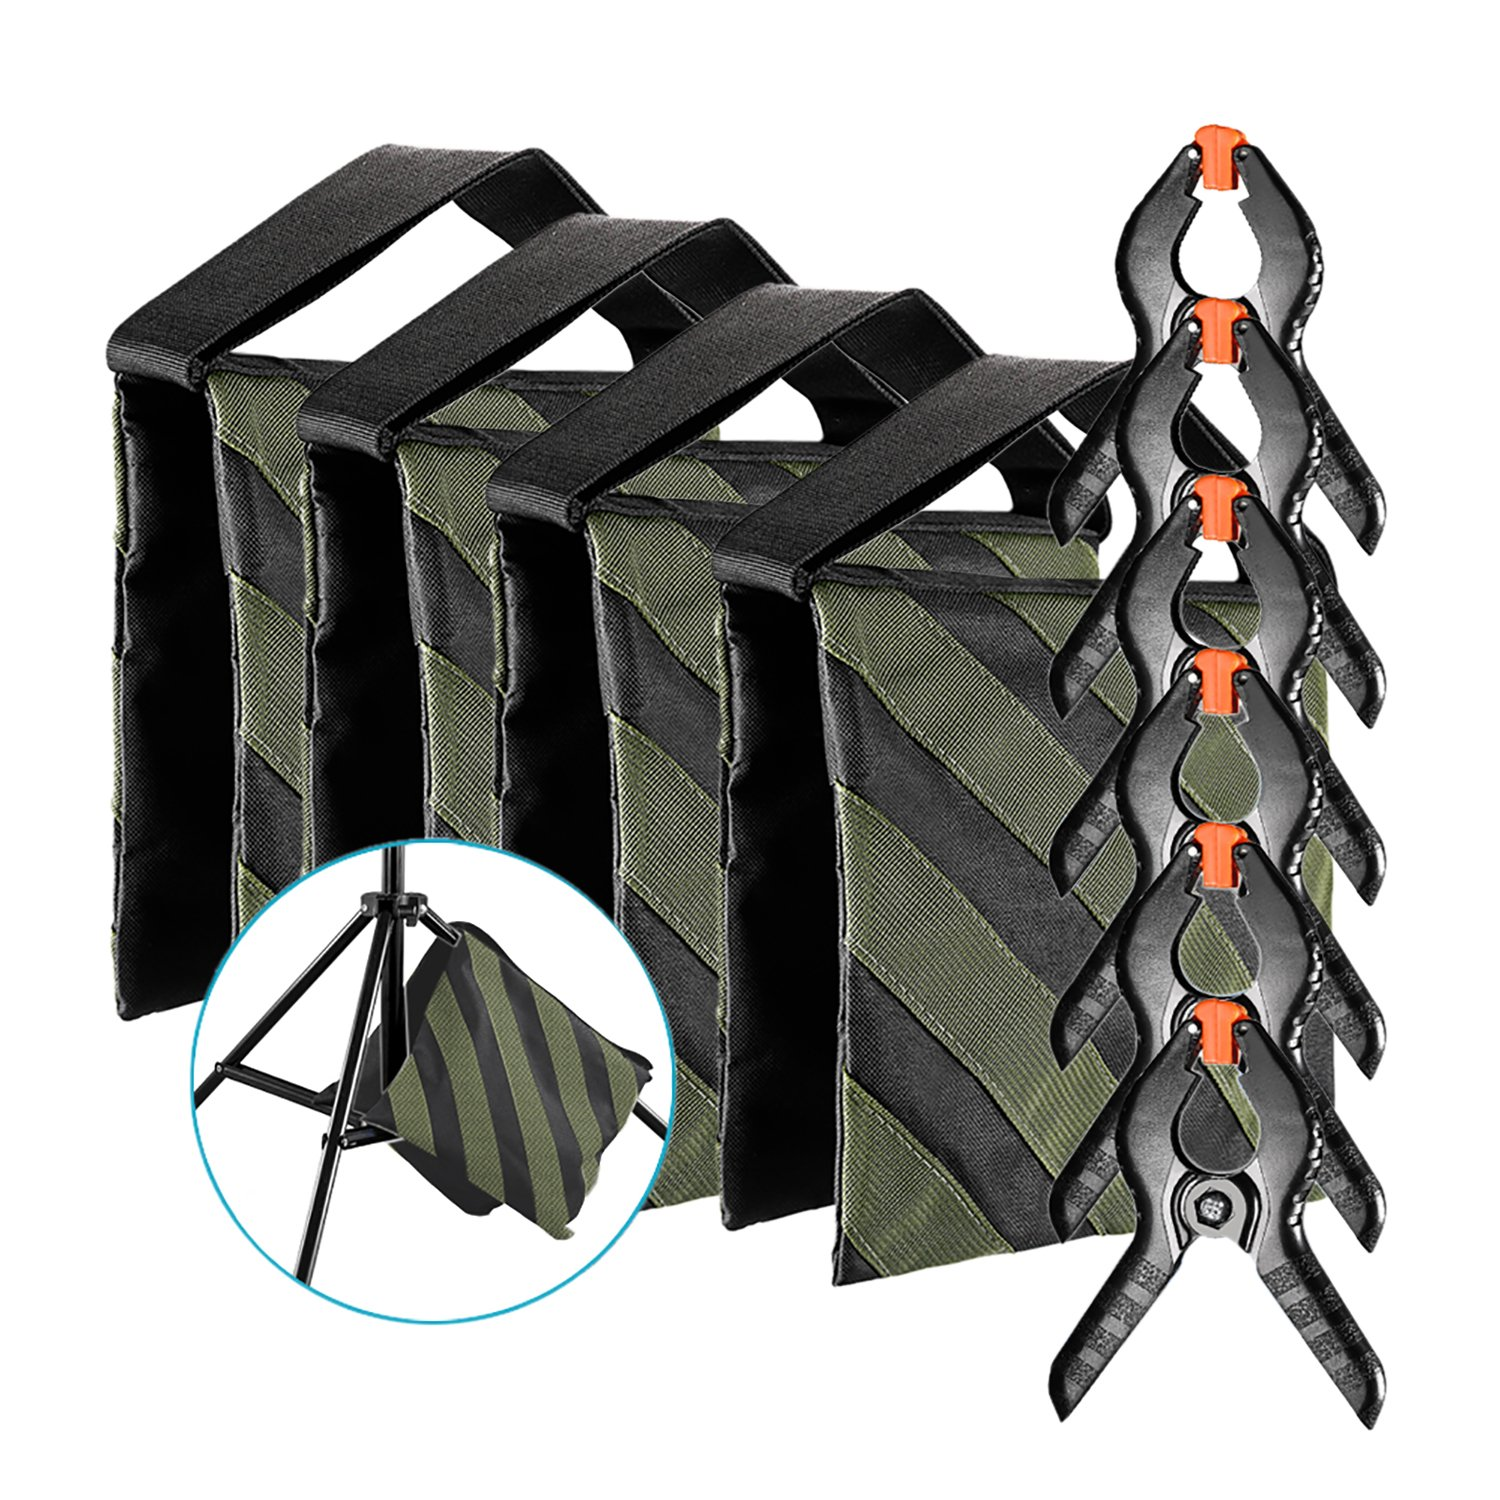 Neewer 4-pack Photography Sandbag (Black/Army Green, Empty) and 6-pack 4.3 inches/11 centimeters Muslin Backdrop Spring Clamps Clips for Light Stands, Tripods and Other Lighting Accessories 90092798